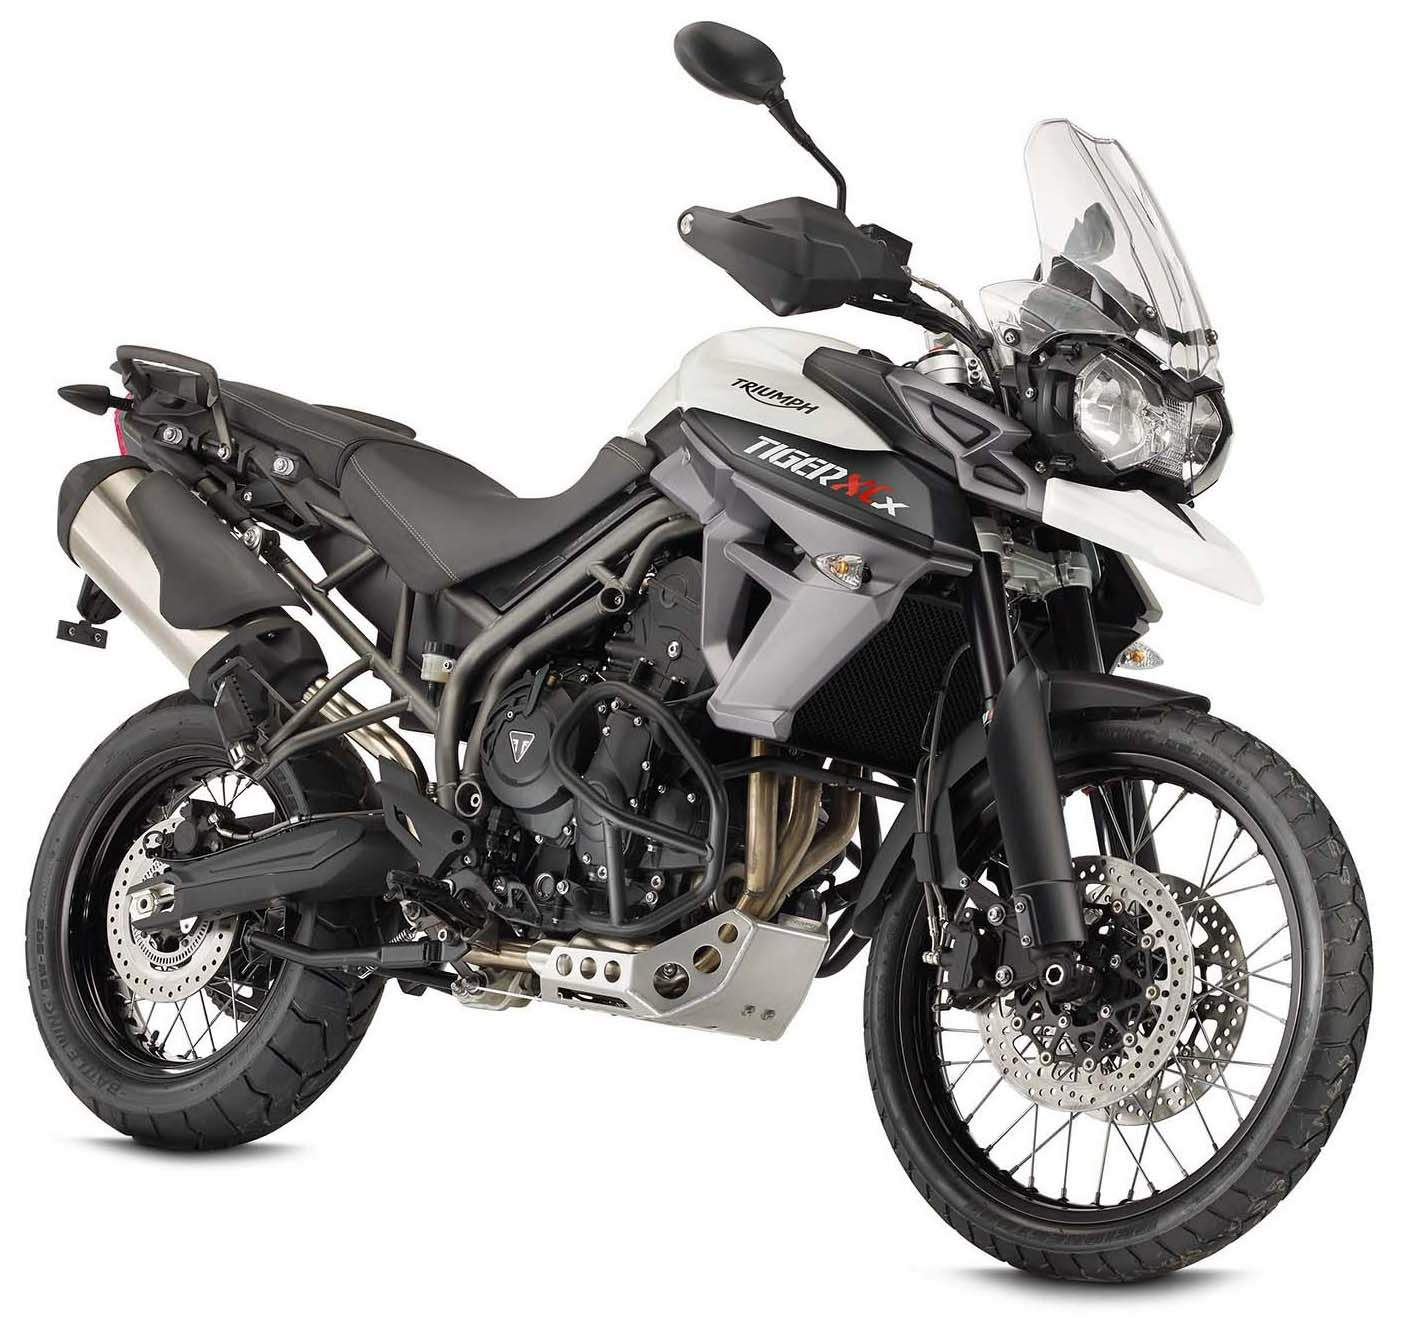 triumph tiger 800 xcx specs 2014 2015 autoevolution. Black Bedroom Furniture Sets. Home Design Ideas